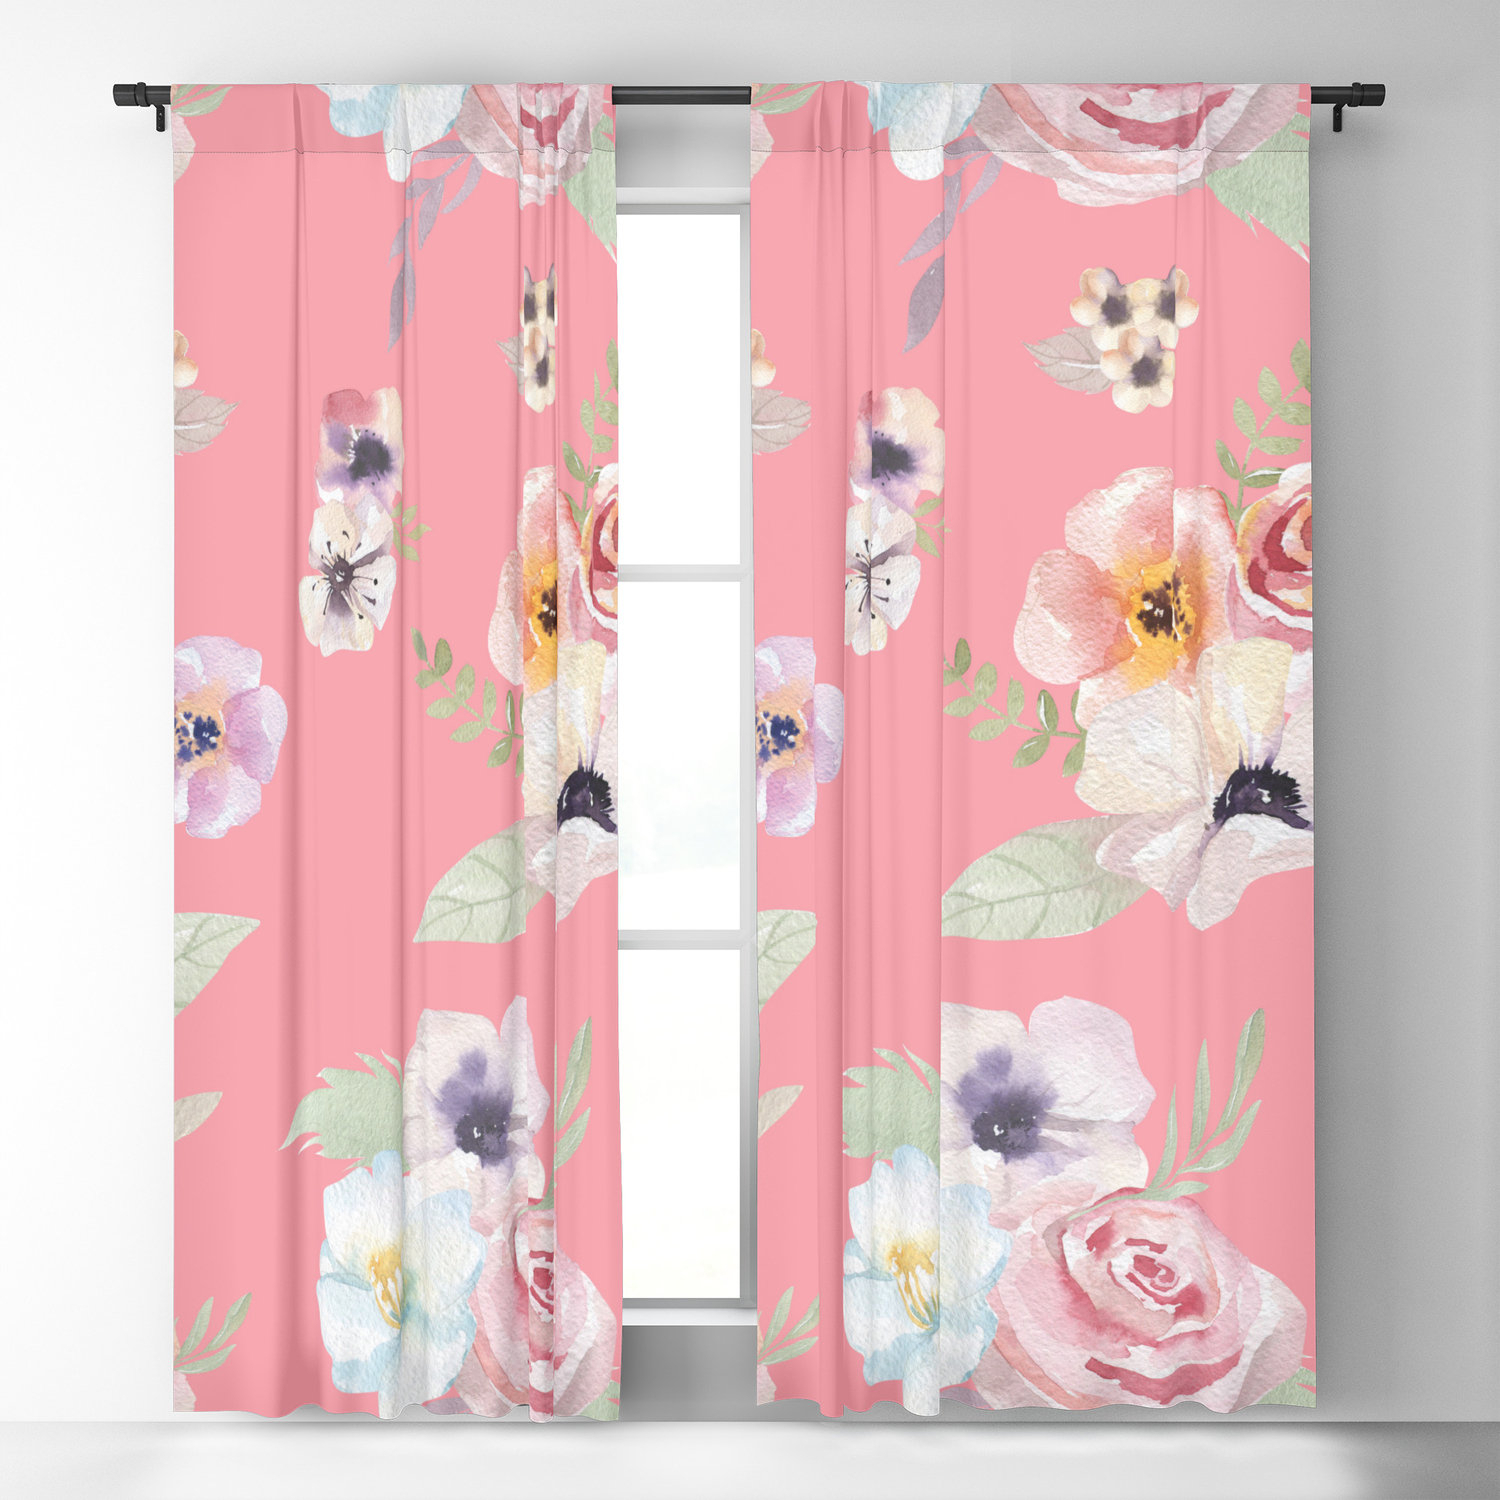 Window Curtains – Watercolor Floral I – Bright Pink – 50 X 84 Or With Regard To Andorra Watercolor Floral Textured Sheer Single Curtain Panels (Image 19 of 20)